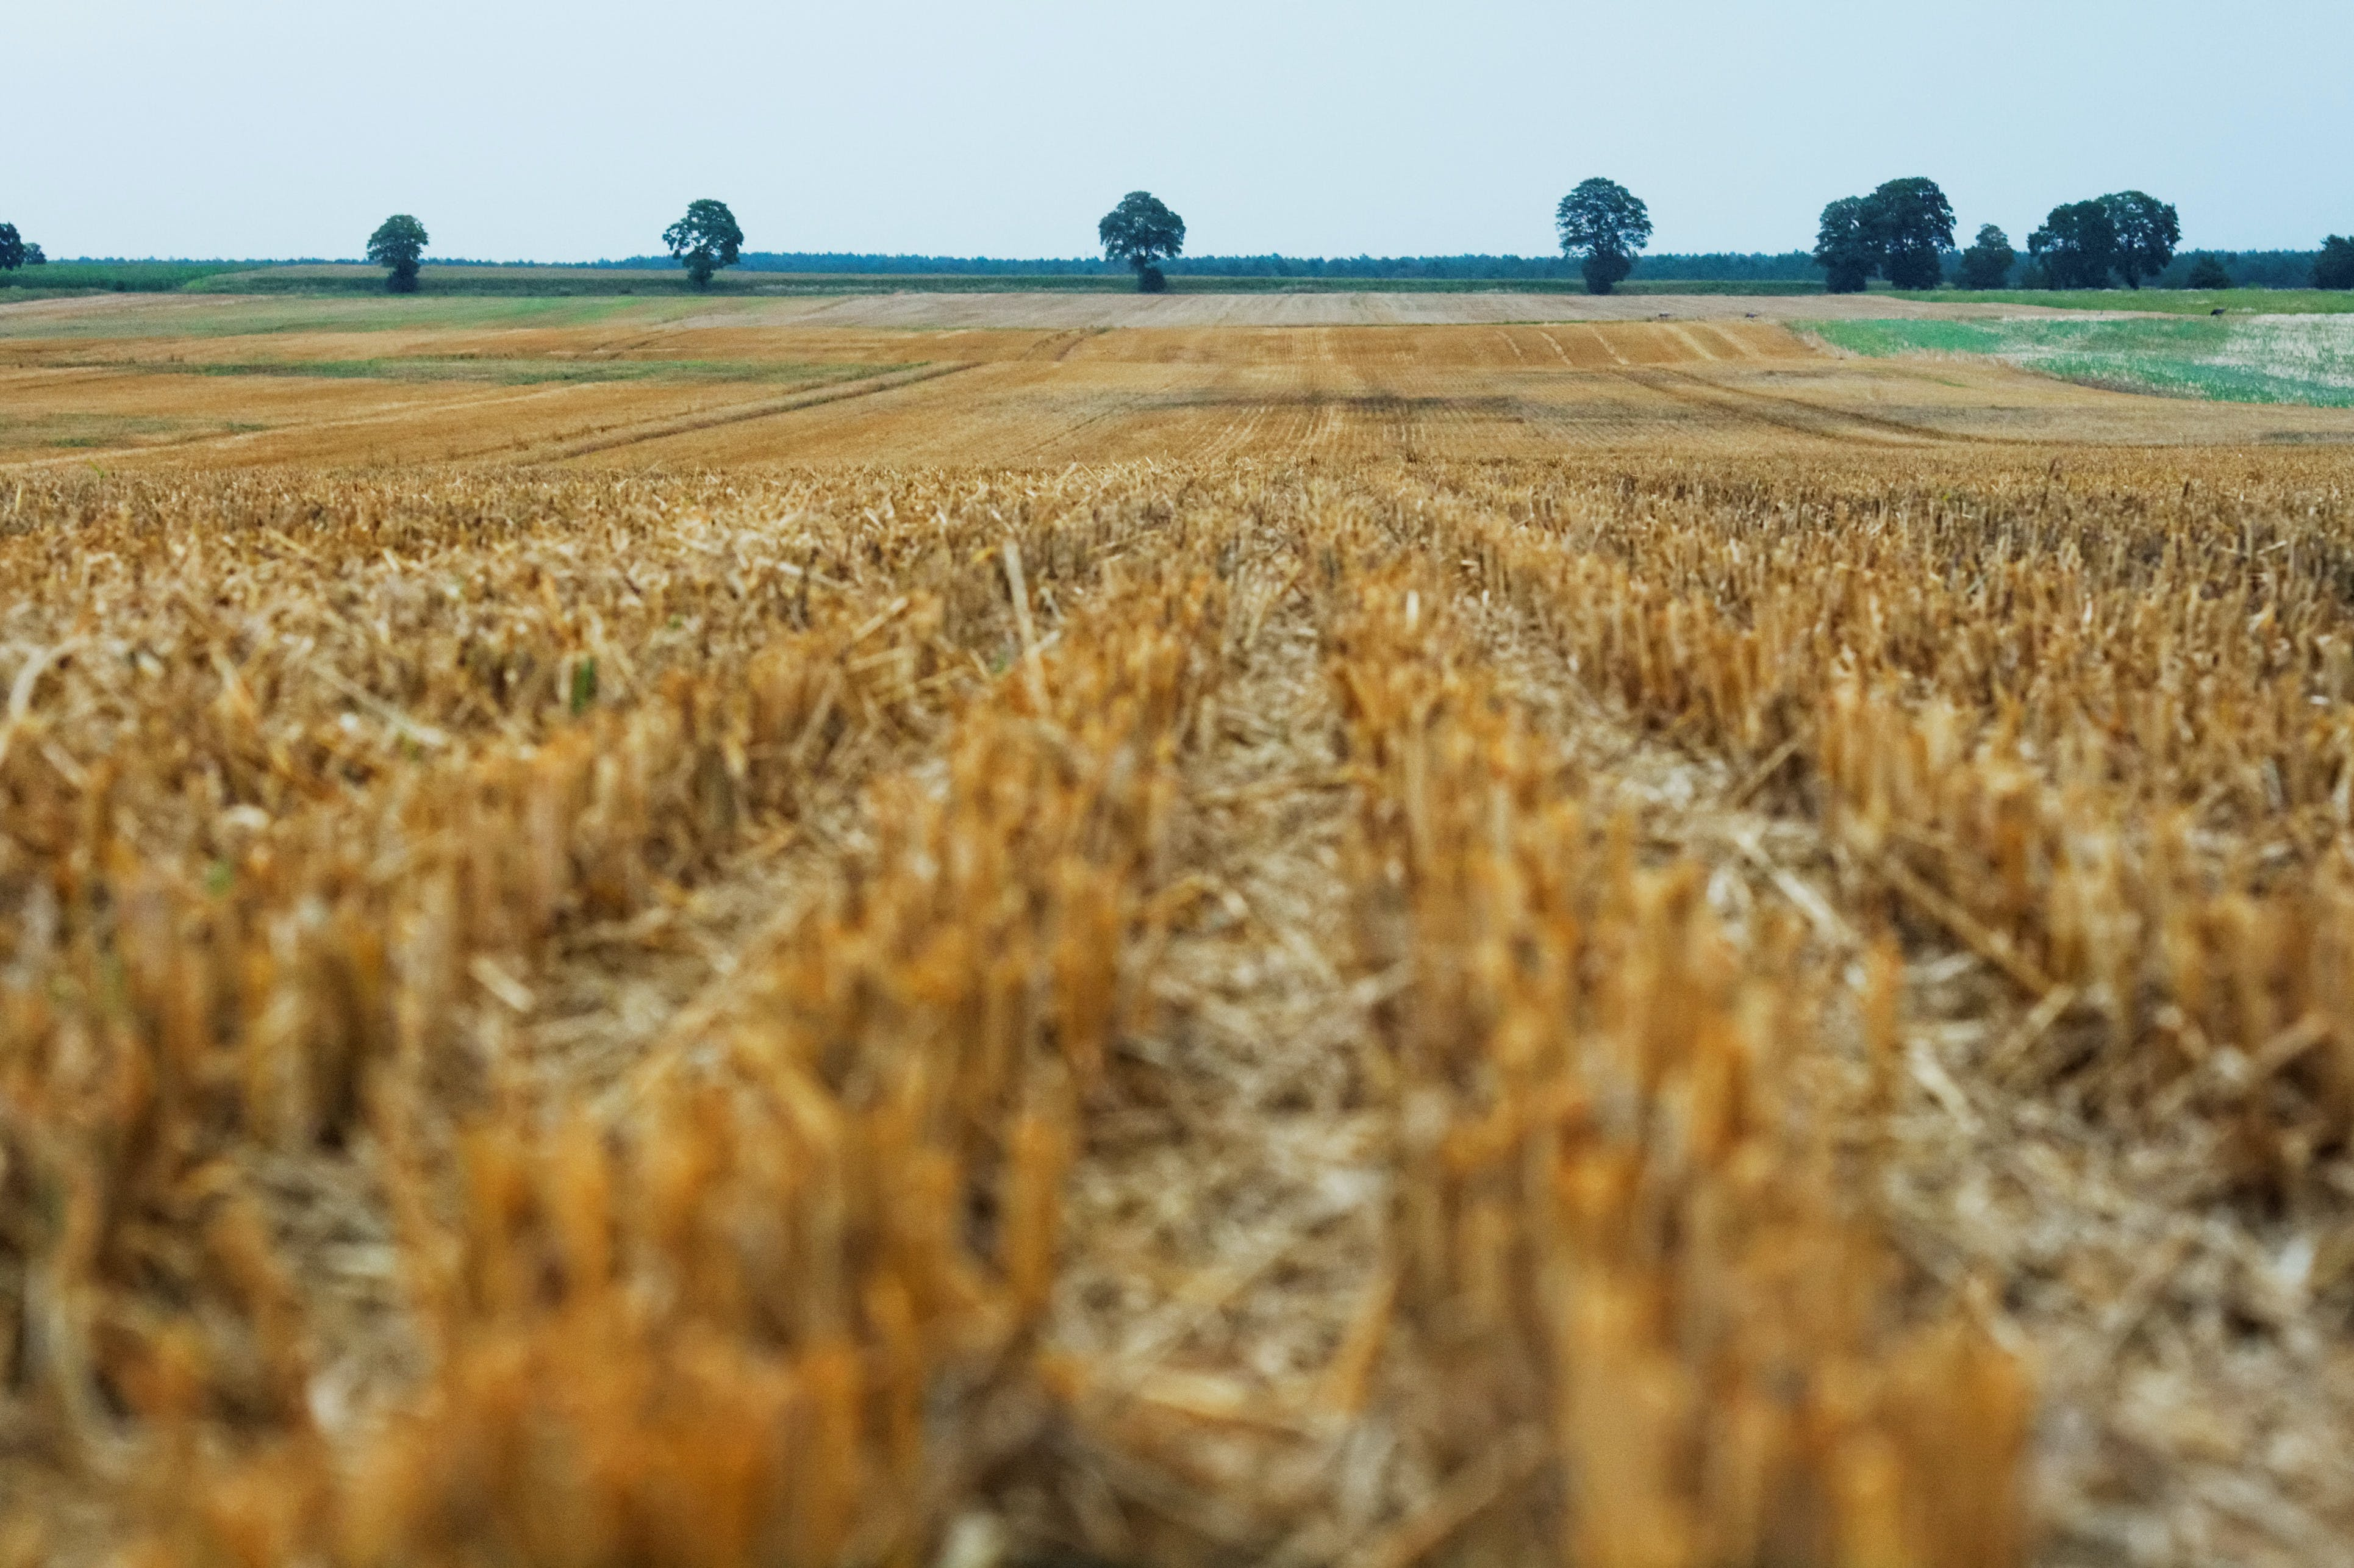 agriculture, field, grain